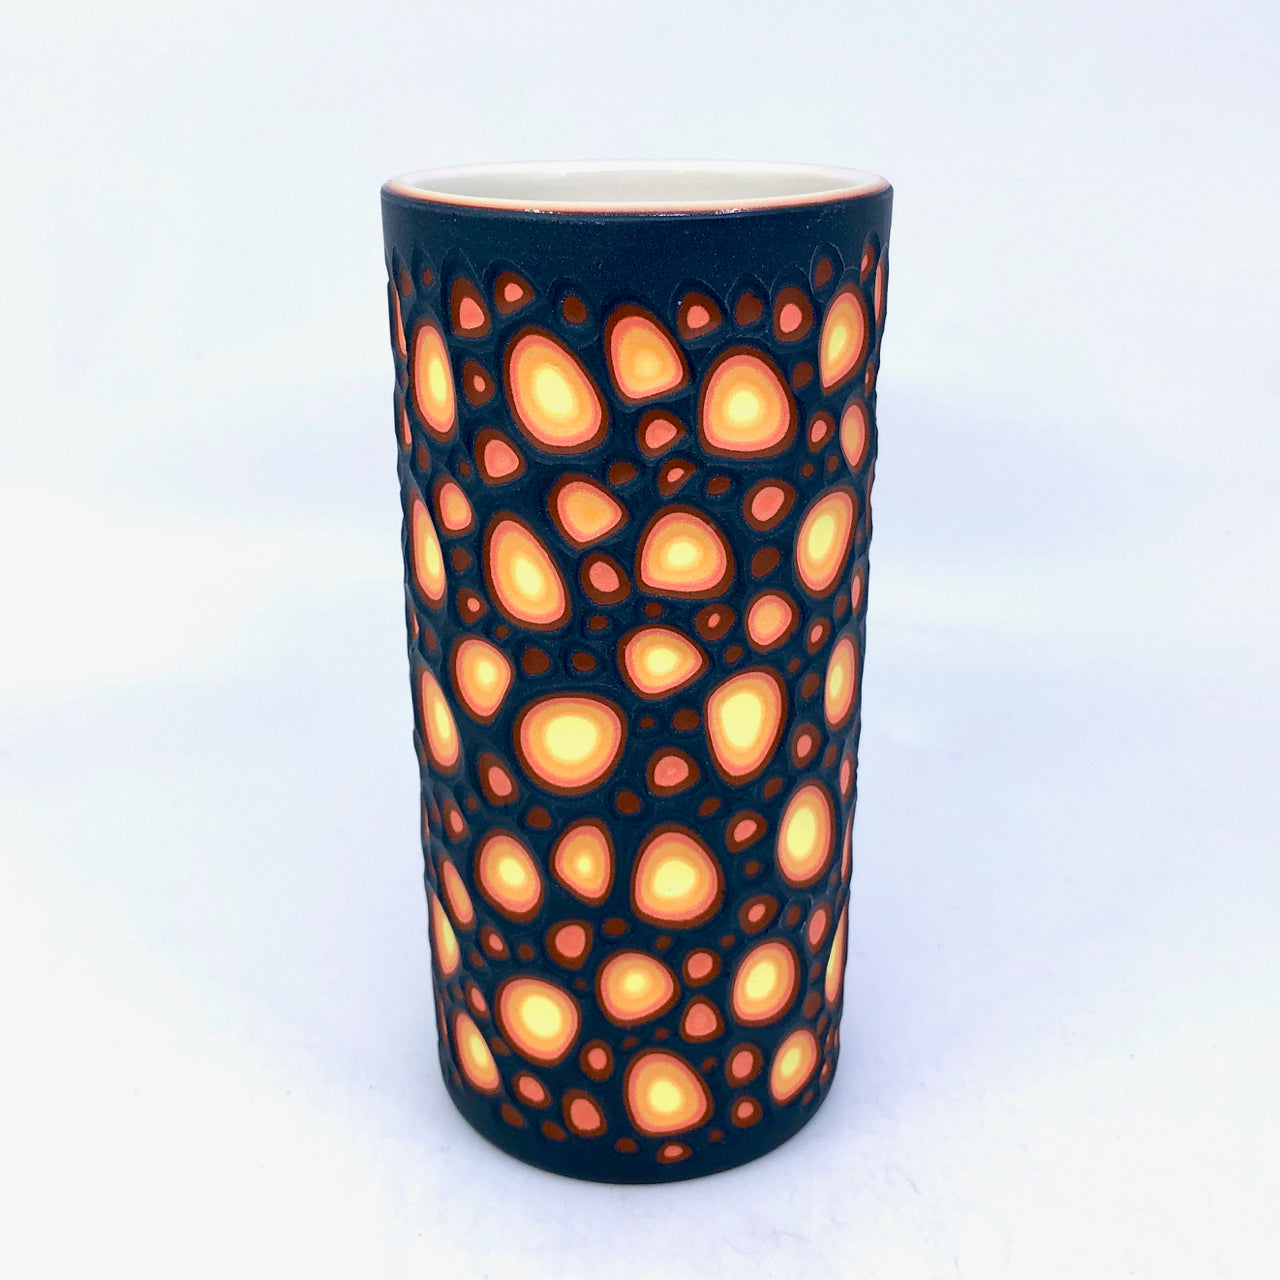 Lava Craters 5-Layer Medium Column Vase